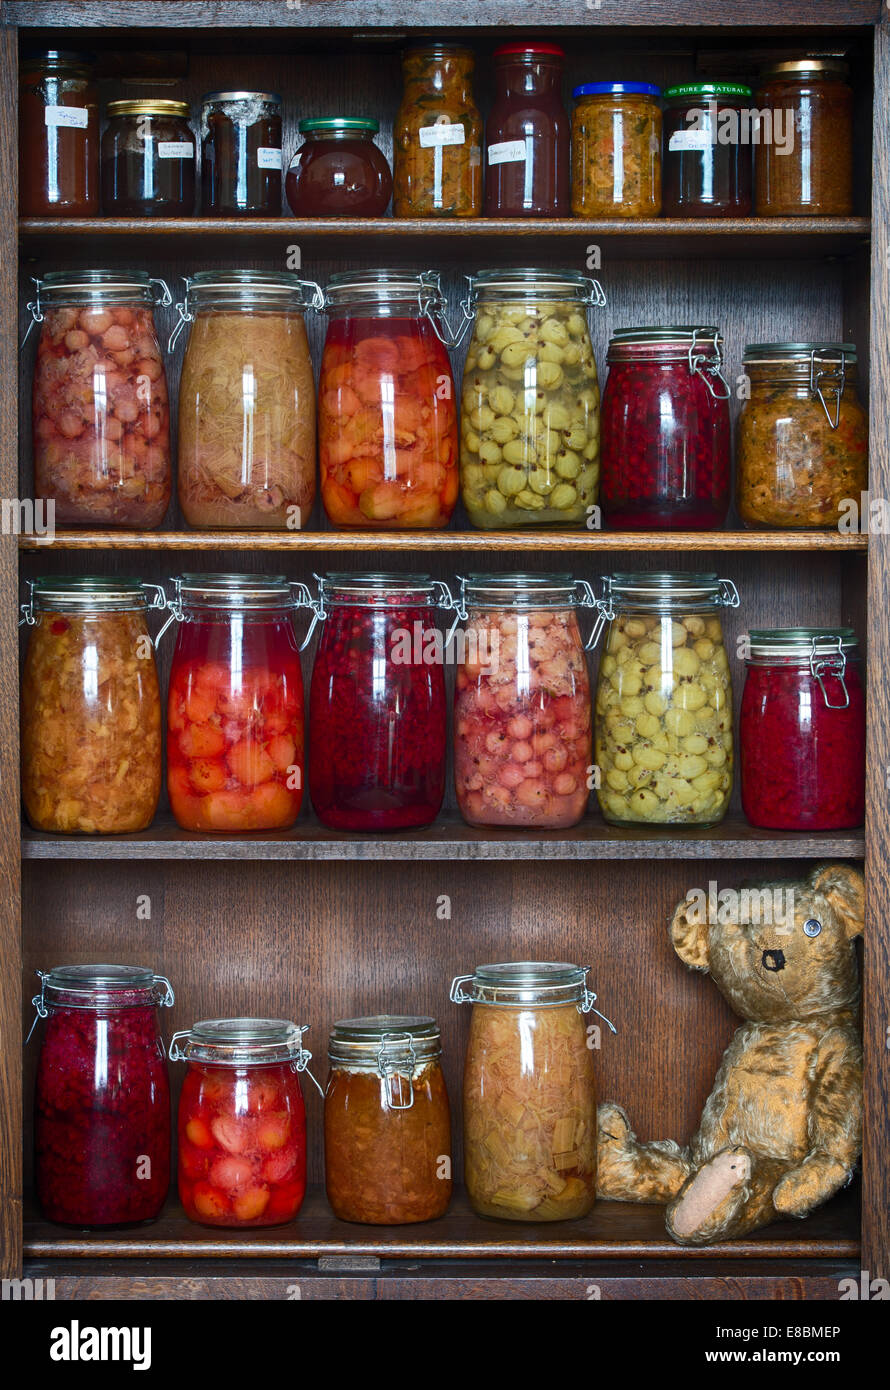 Threadbare One Eyed Teddy bear on a wooden shelf with stored bottled fruits, jams and preserves - Stock Image